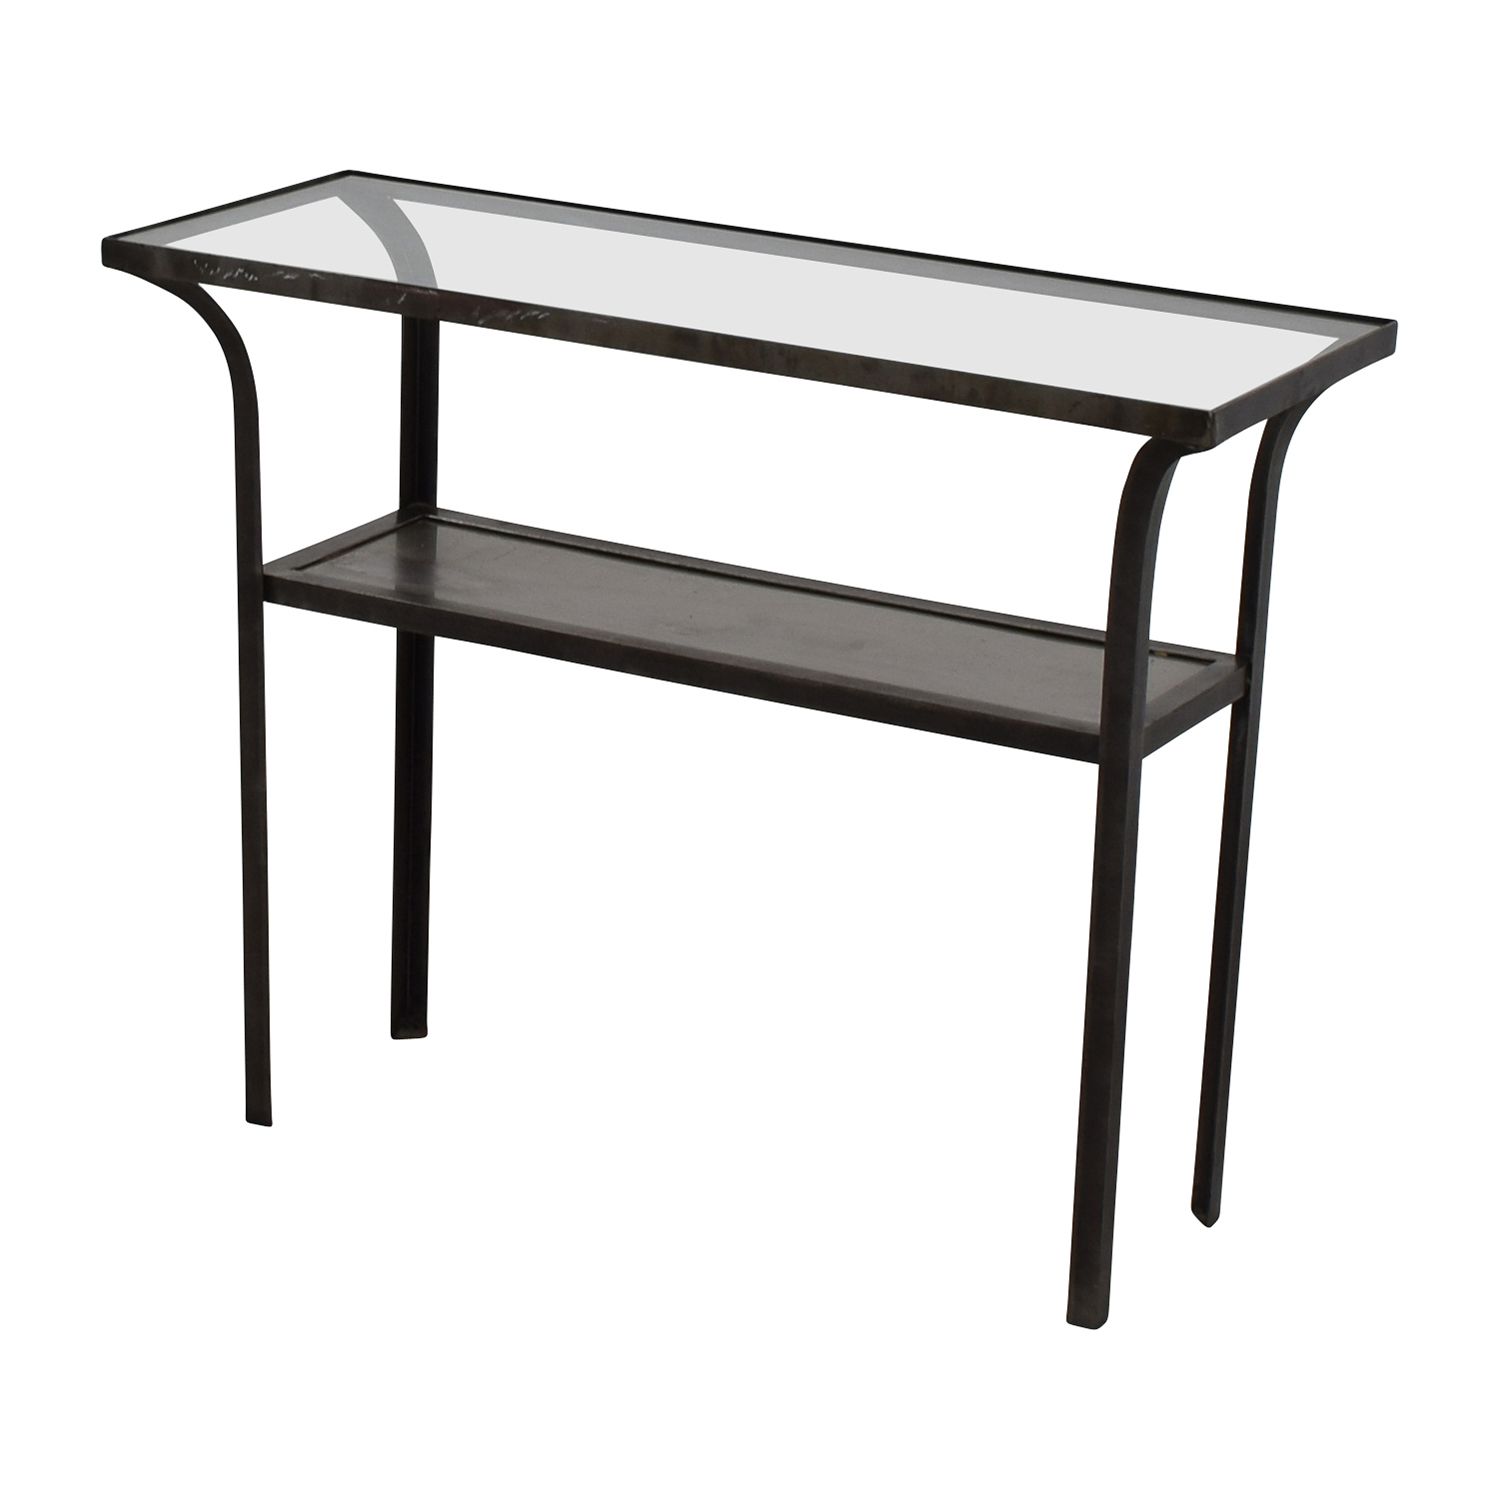 Crate & Barrel Crate & Barrel Metal and Glass Console Table dimensions